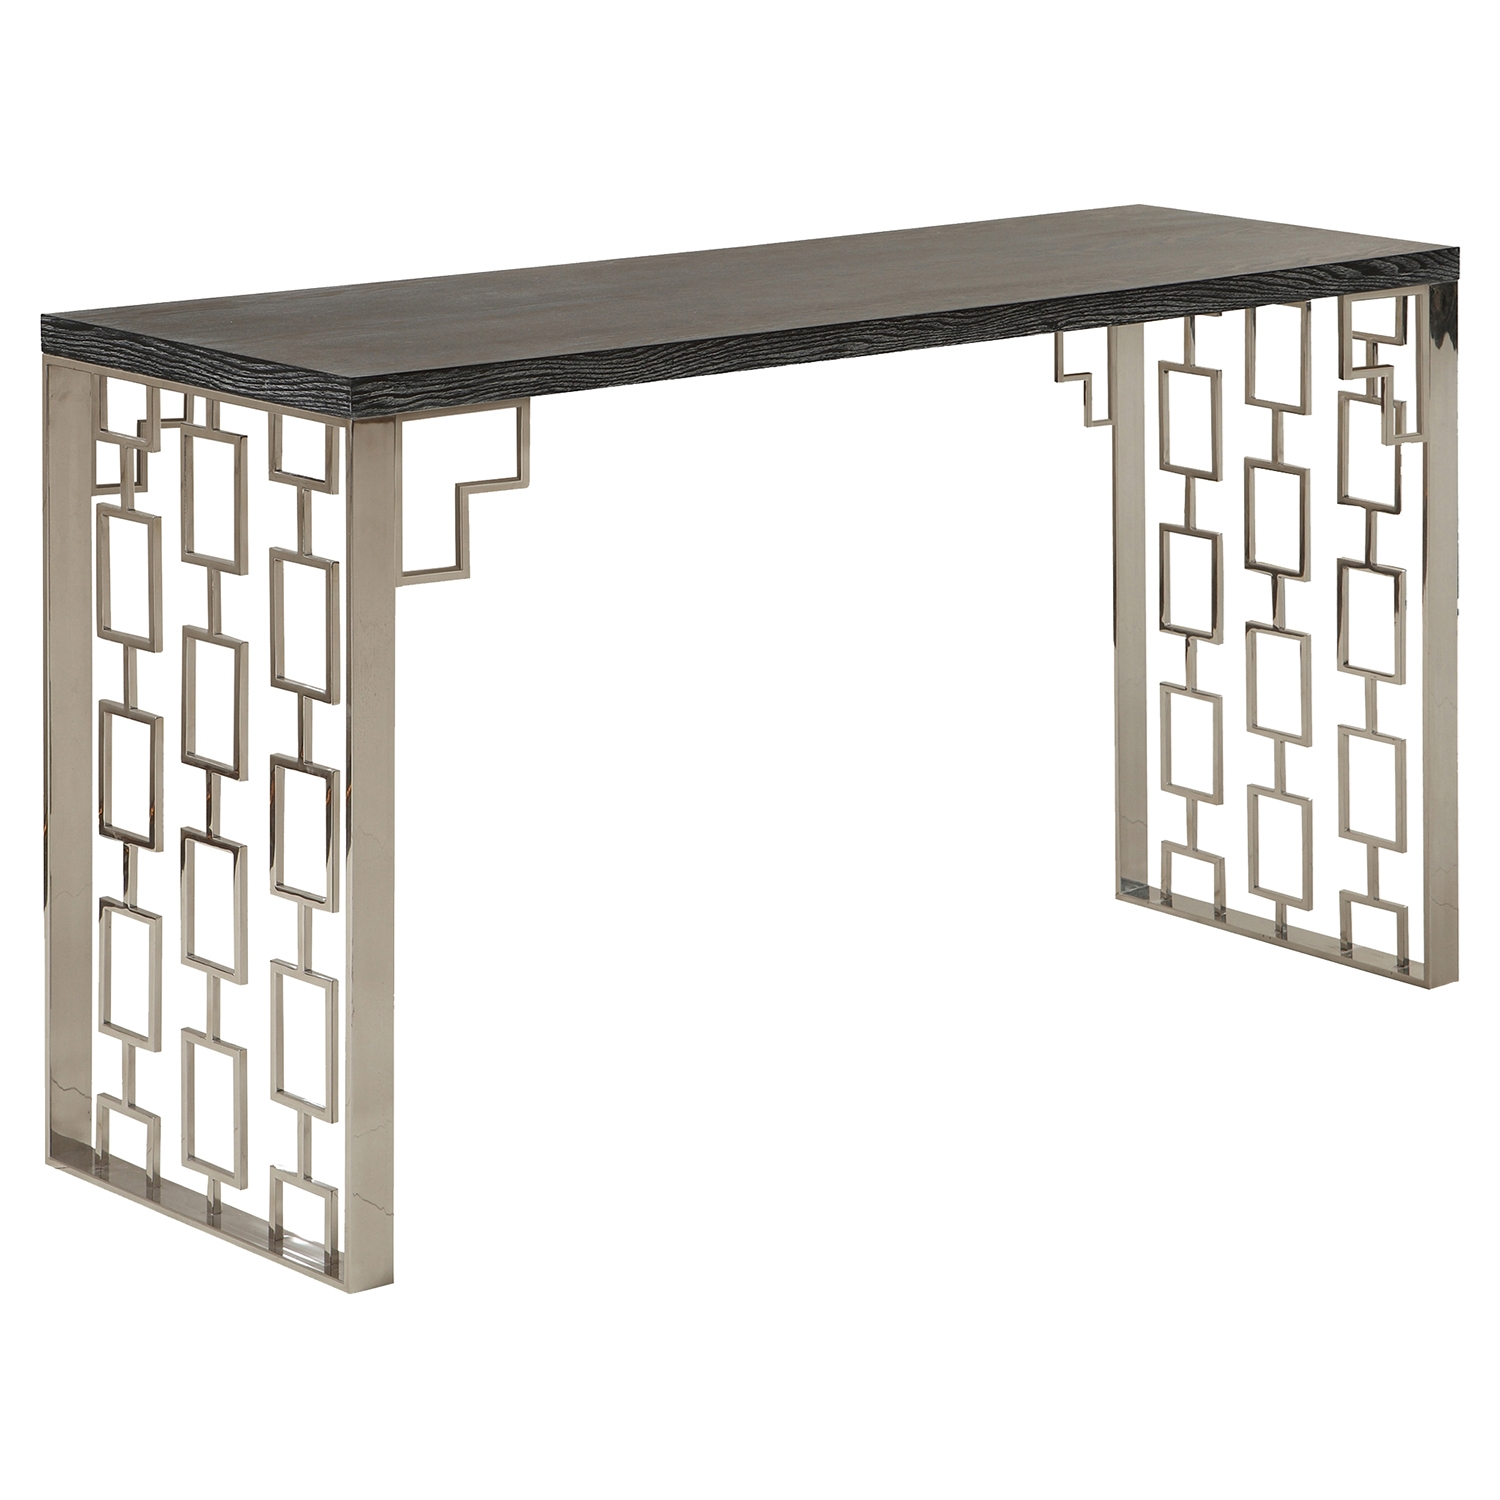 Skyline Console Table - Charcoal Top - AL-LCSKCNBLMT